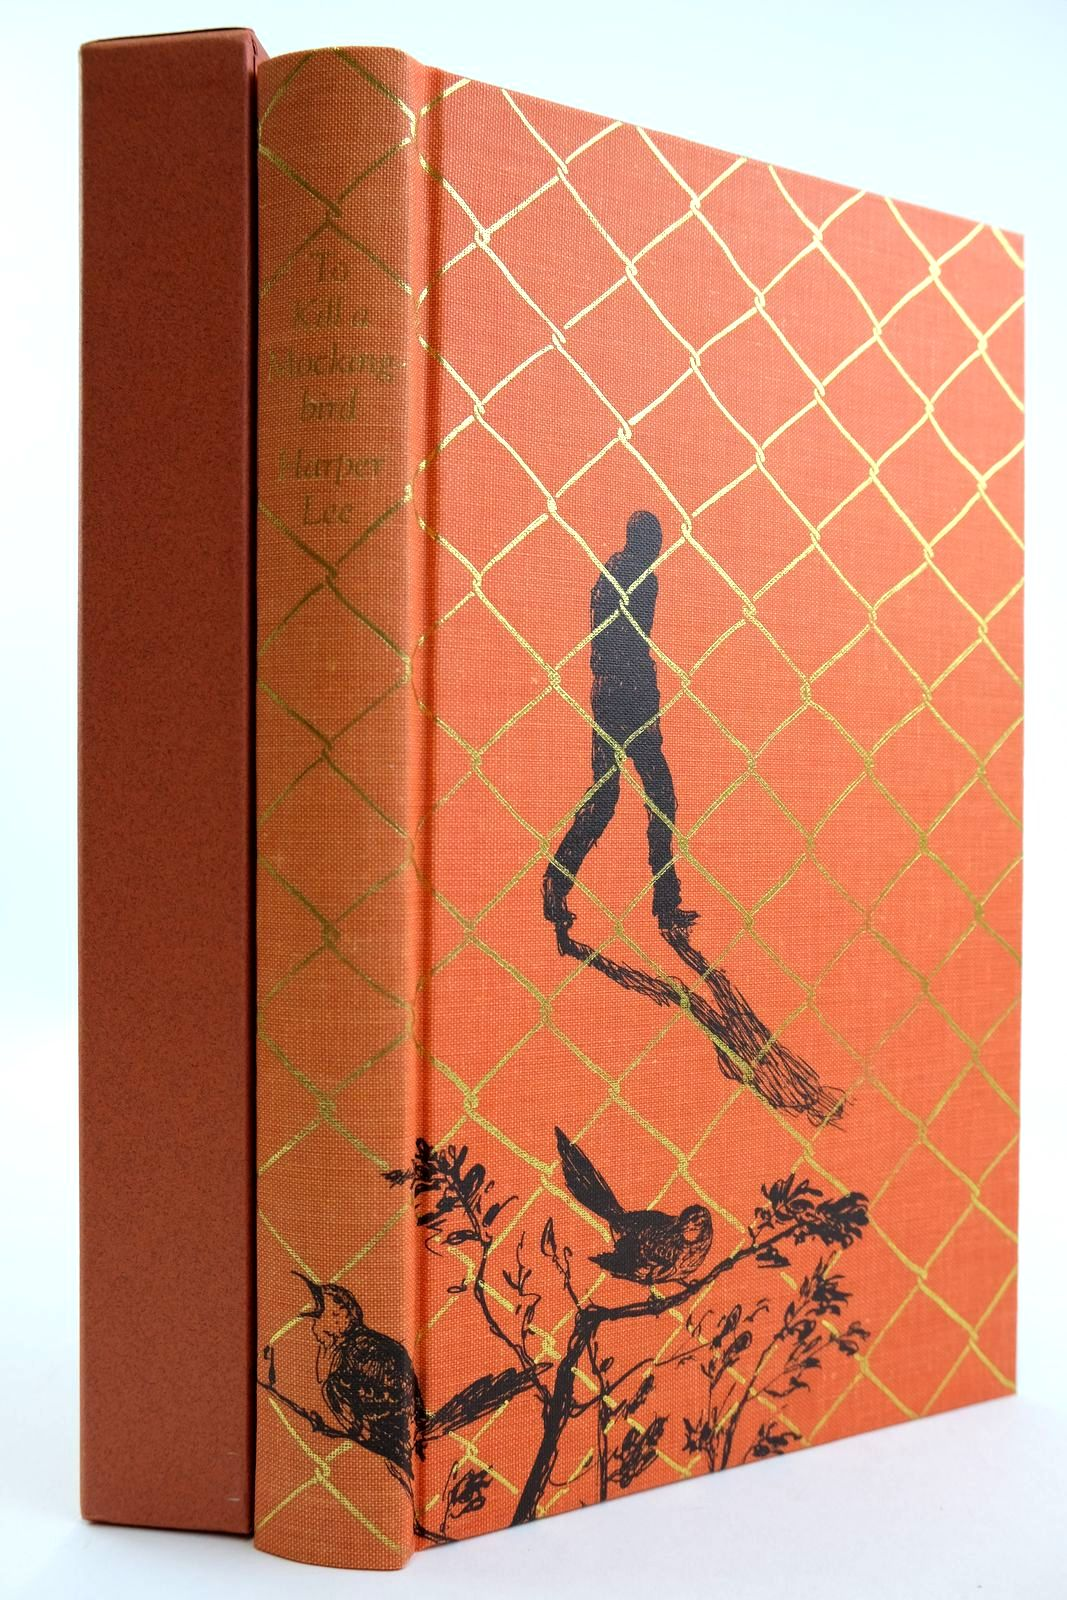 Photo of TO KILL A MOCKINGBIRD written by Lee, Harper illustrated by Brouwer, Aafke published by Folio Society (STOCK CODE: 2132391)  for sale by Stella & Rose's Books